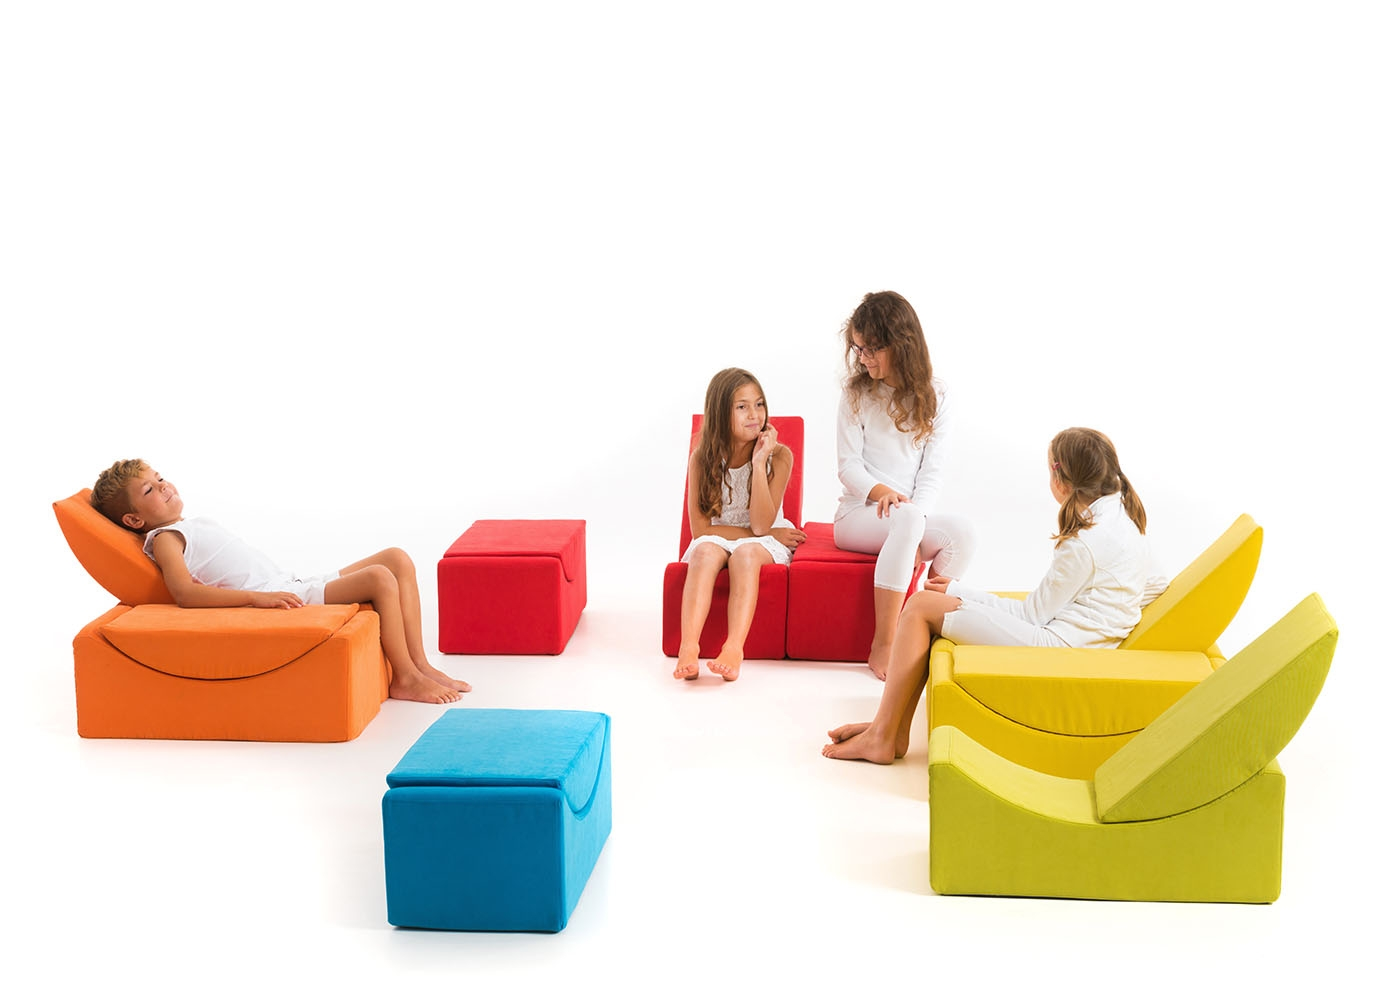 fauteuil en mousse original et ludique pour enfants chez ksl living. Black Bedroom Furniture Sets. Home Design Ideas